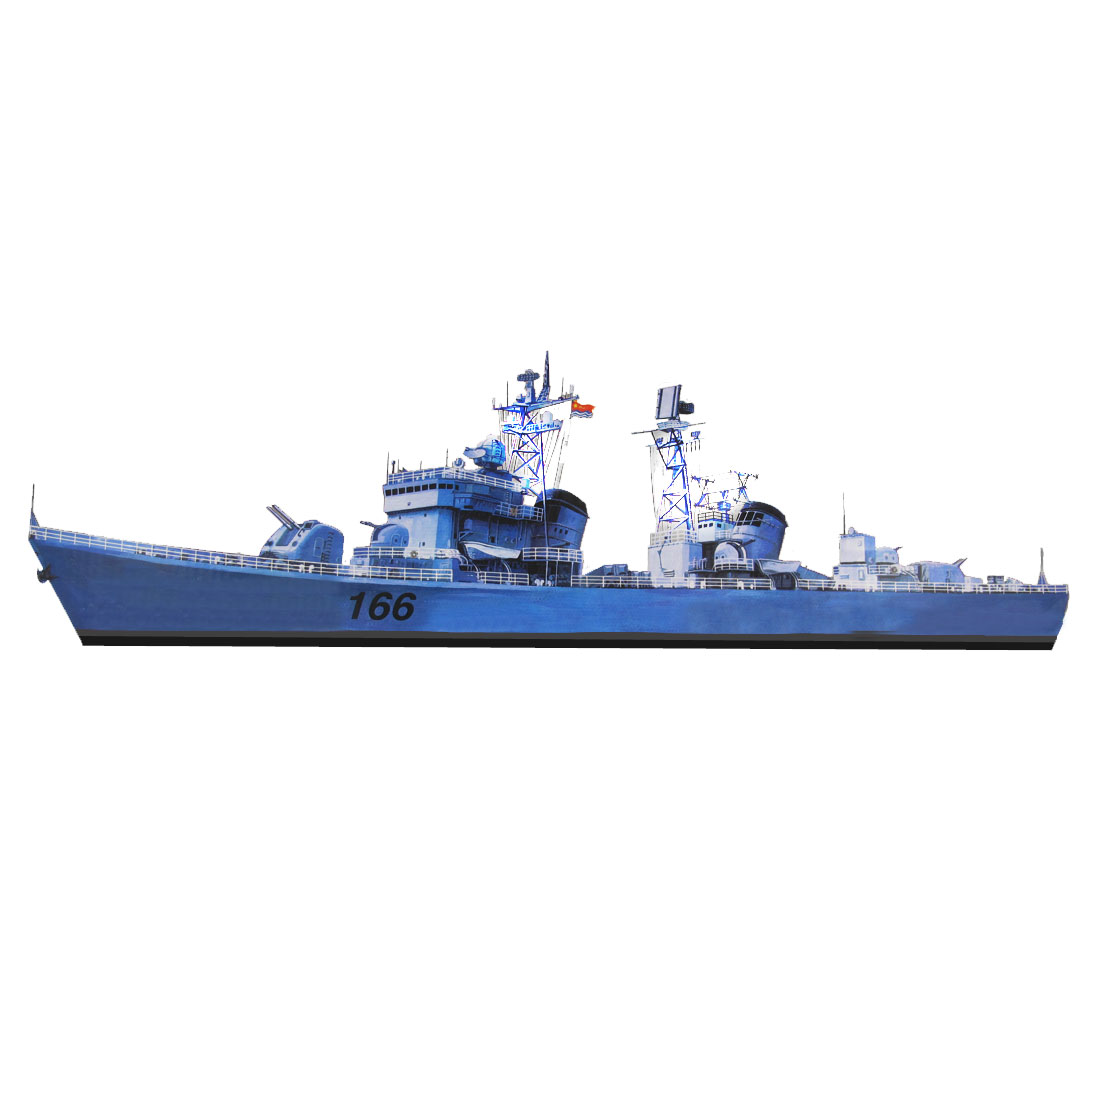 DIY 1/35 Scale Plastic Destroyer Model Construction Kit Puzzle Toy Gray